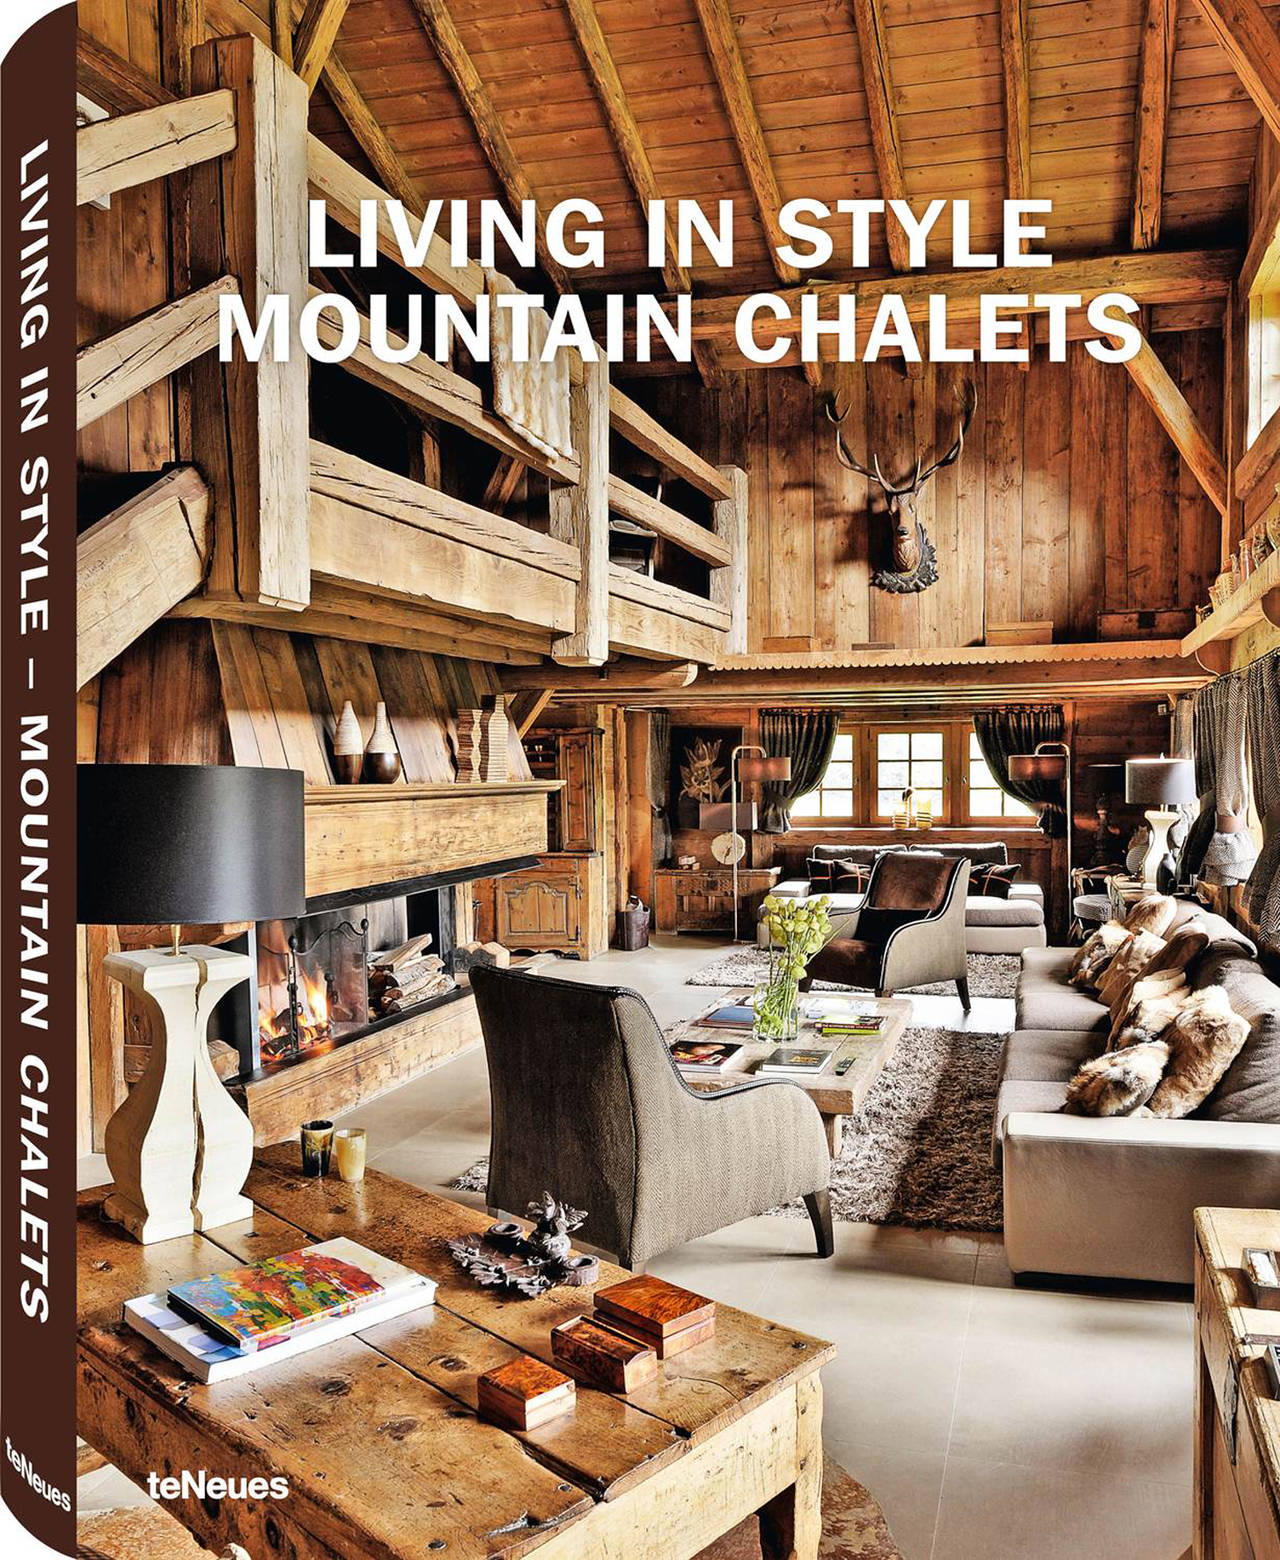 © Living in Style Mountain Chalets, Le Chalet des Fermes de Marie, Megève, France, published by teNeues, - www.teneues.com. Photo © Frédéric Ducout